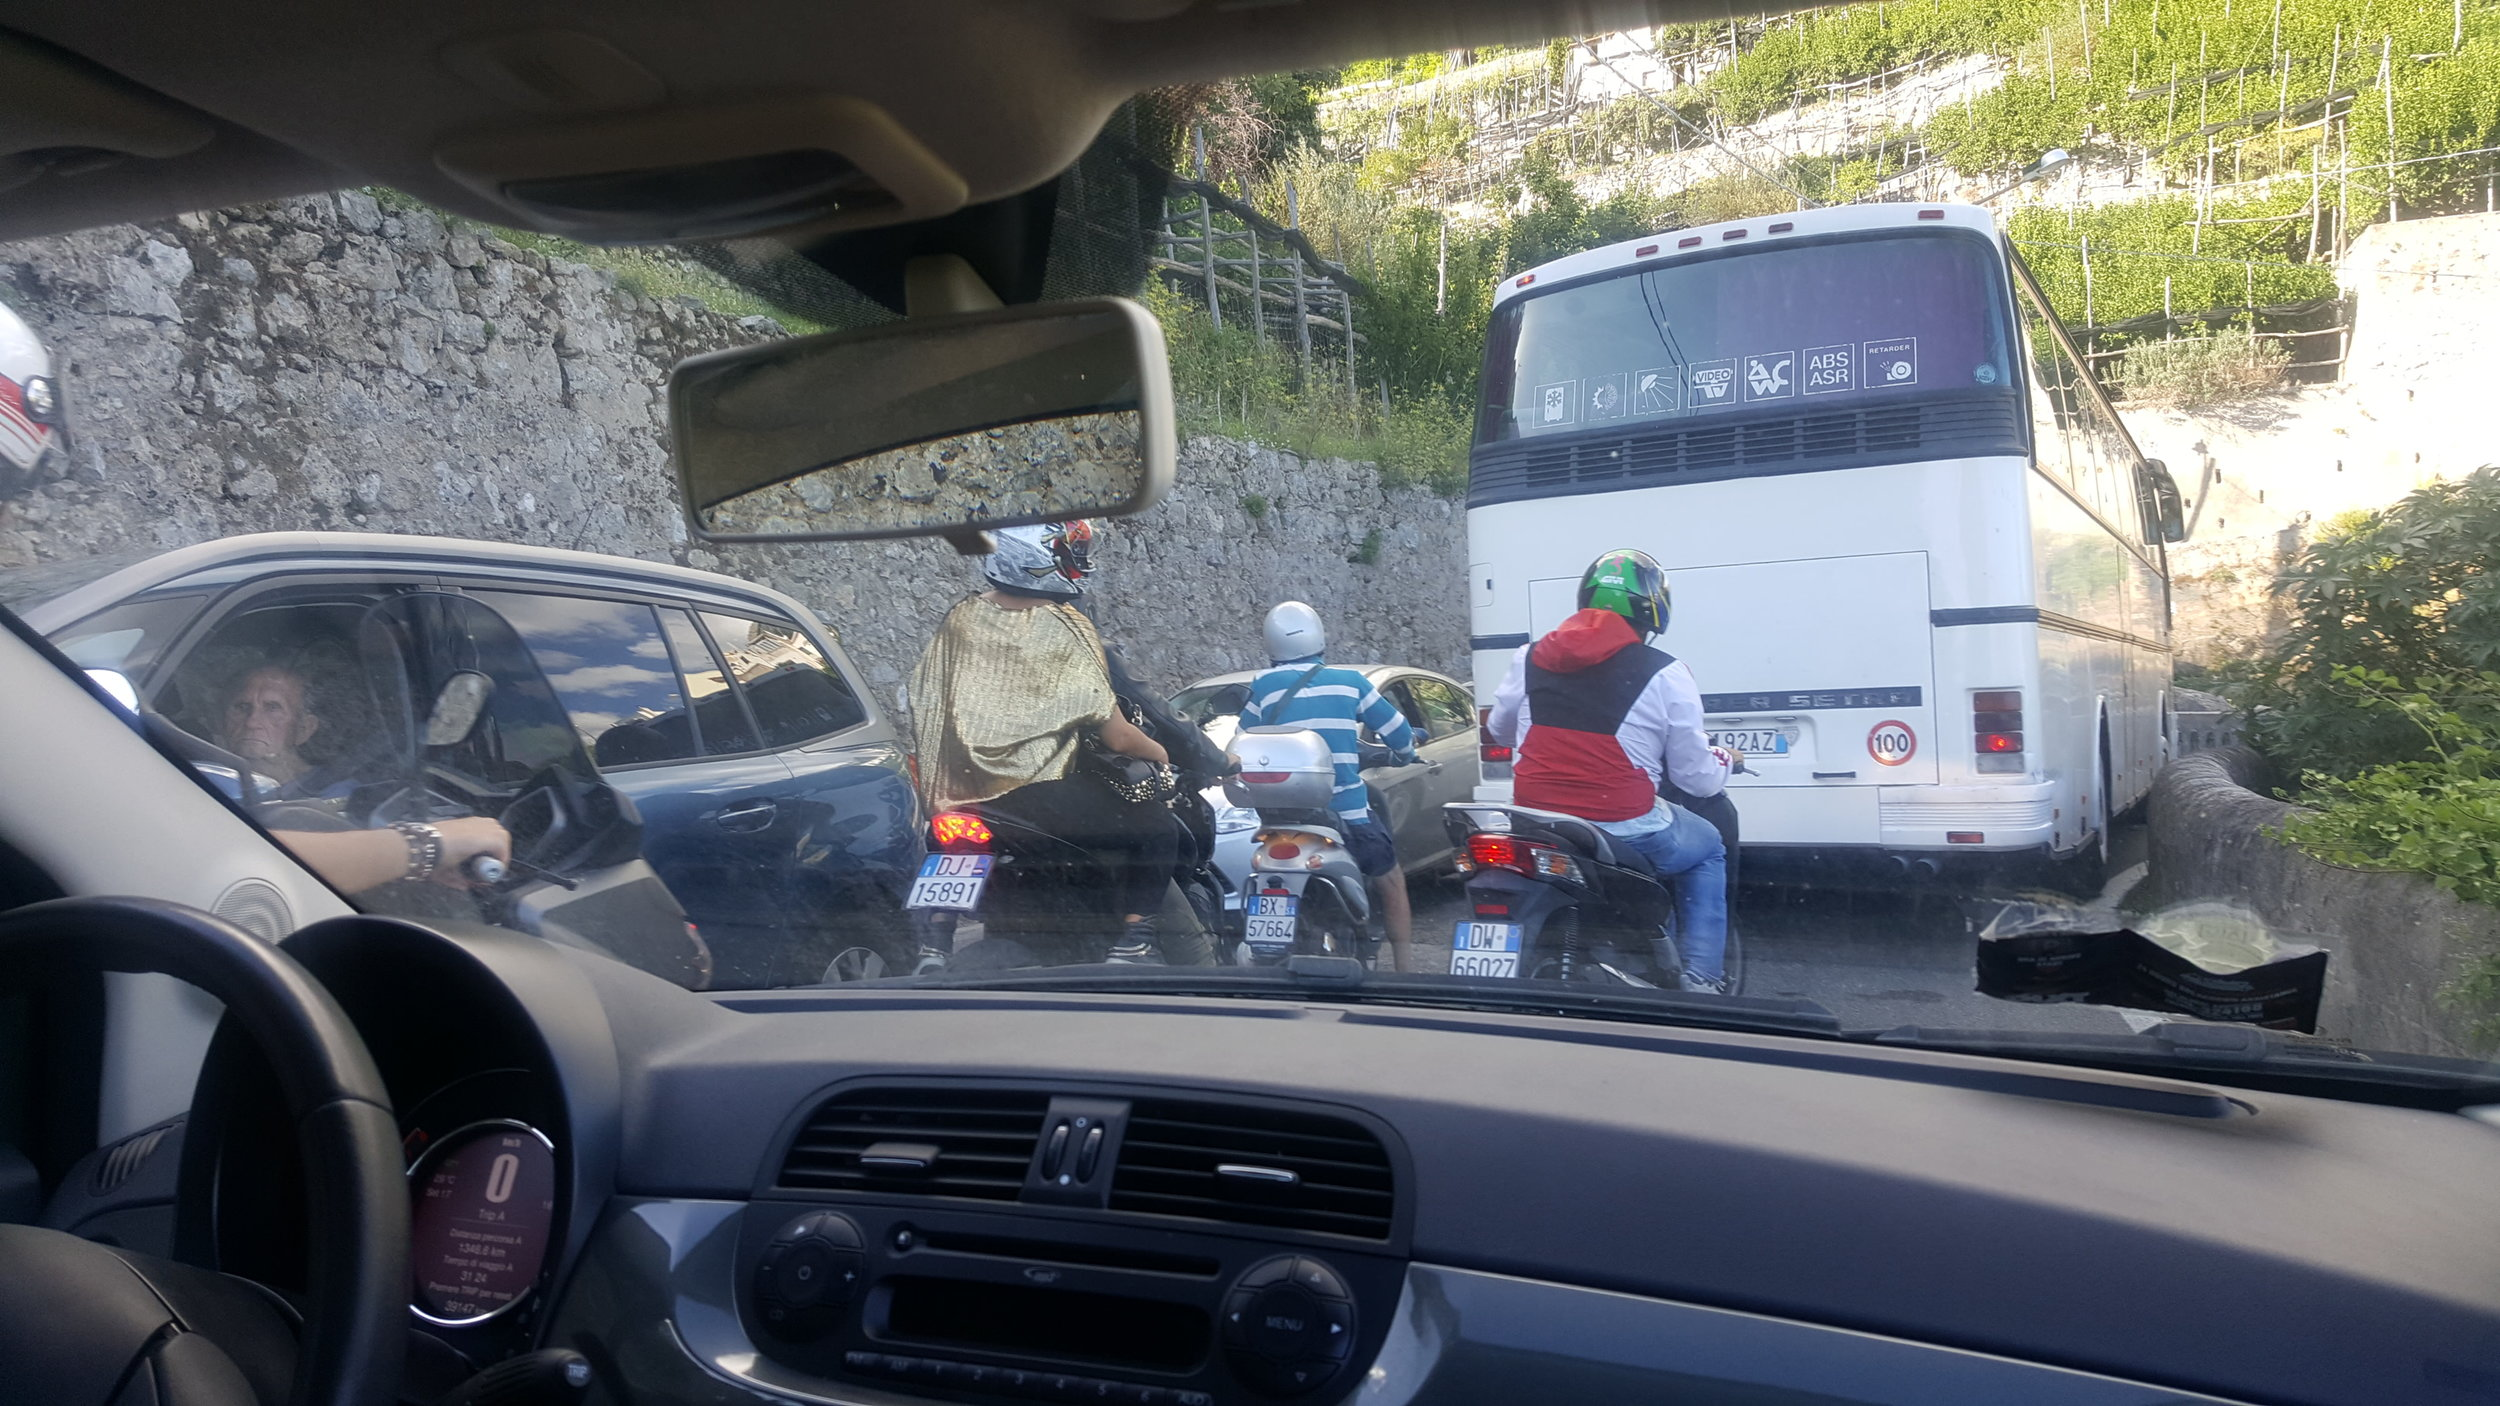 One glimpse at Amalfi traffic.